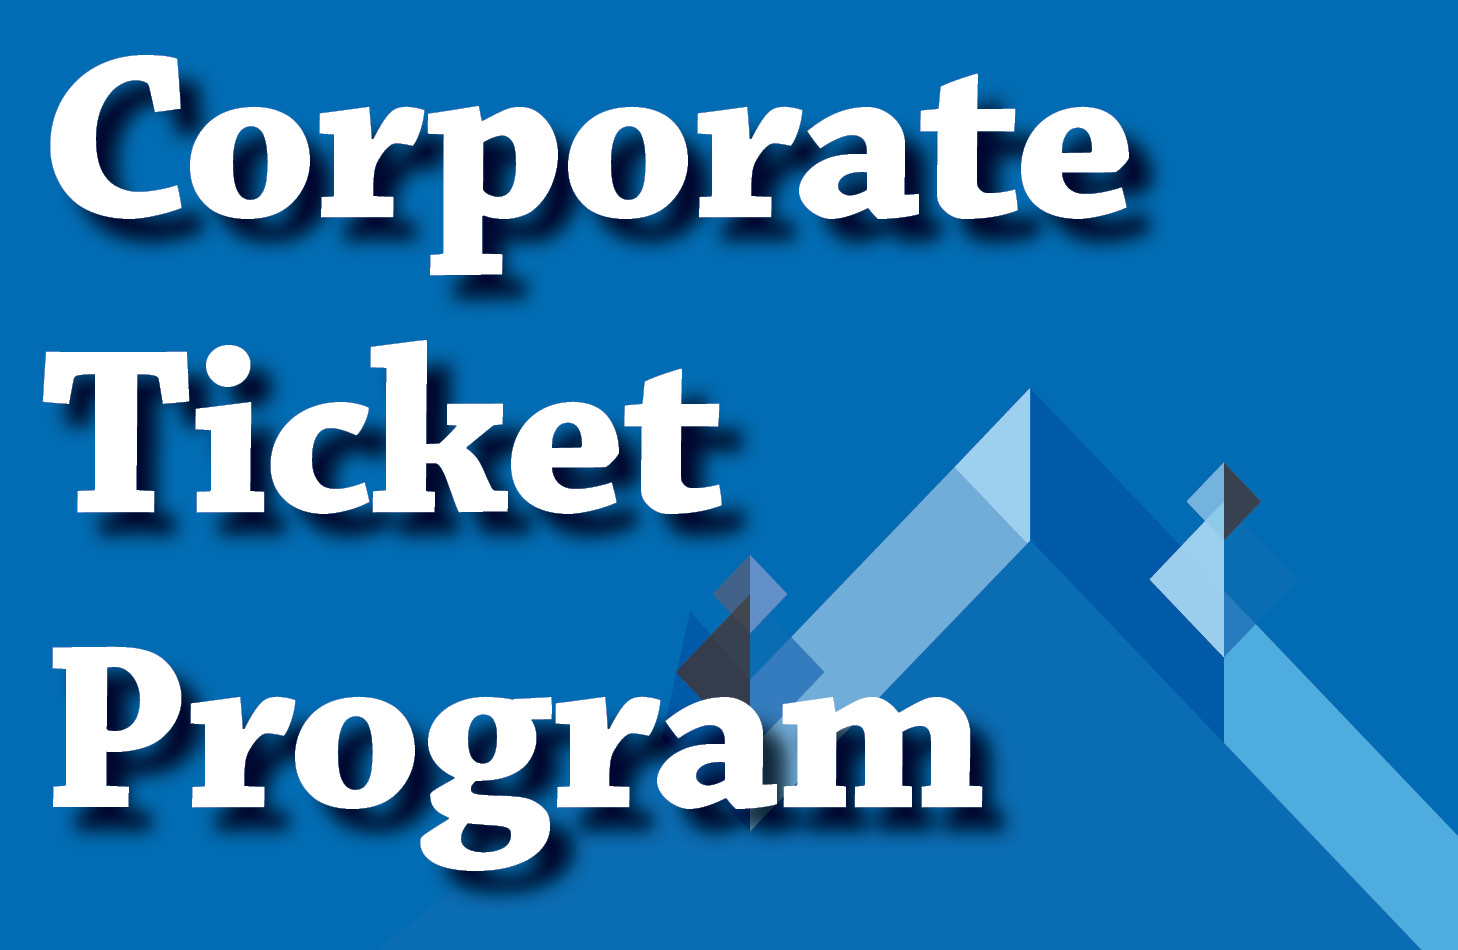 Corporate Ticket Program